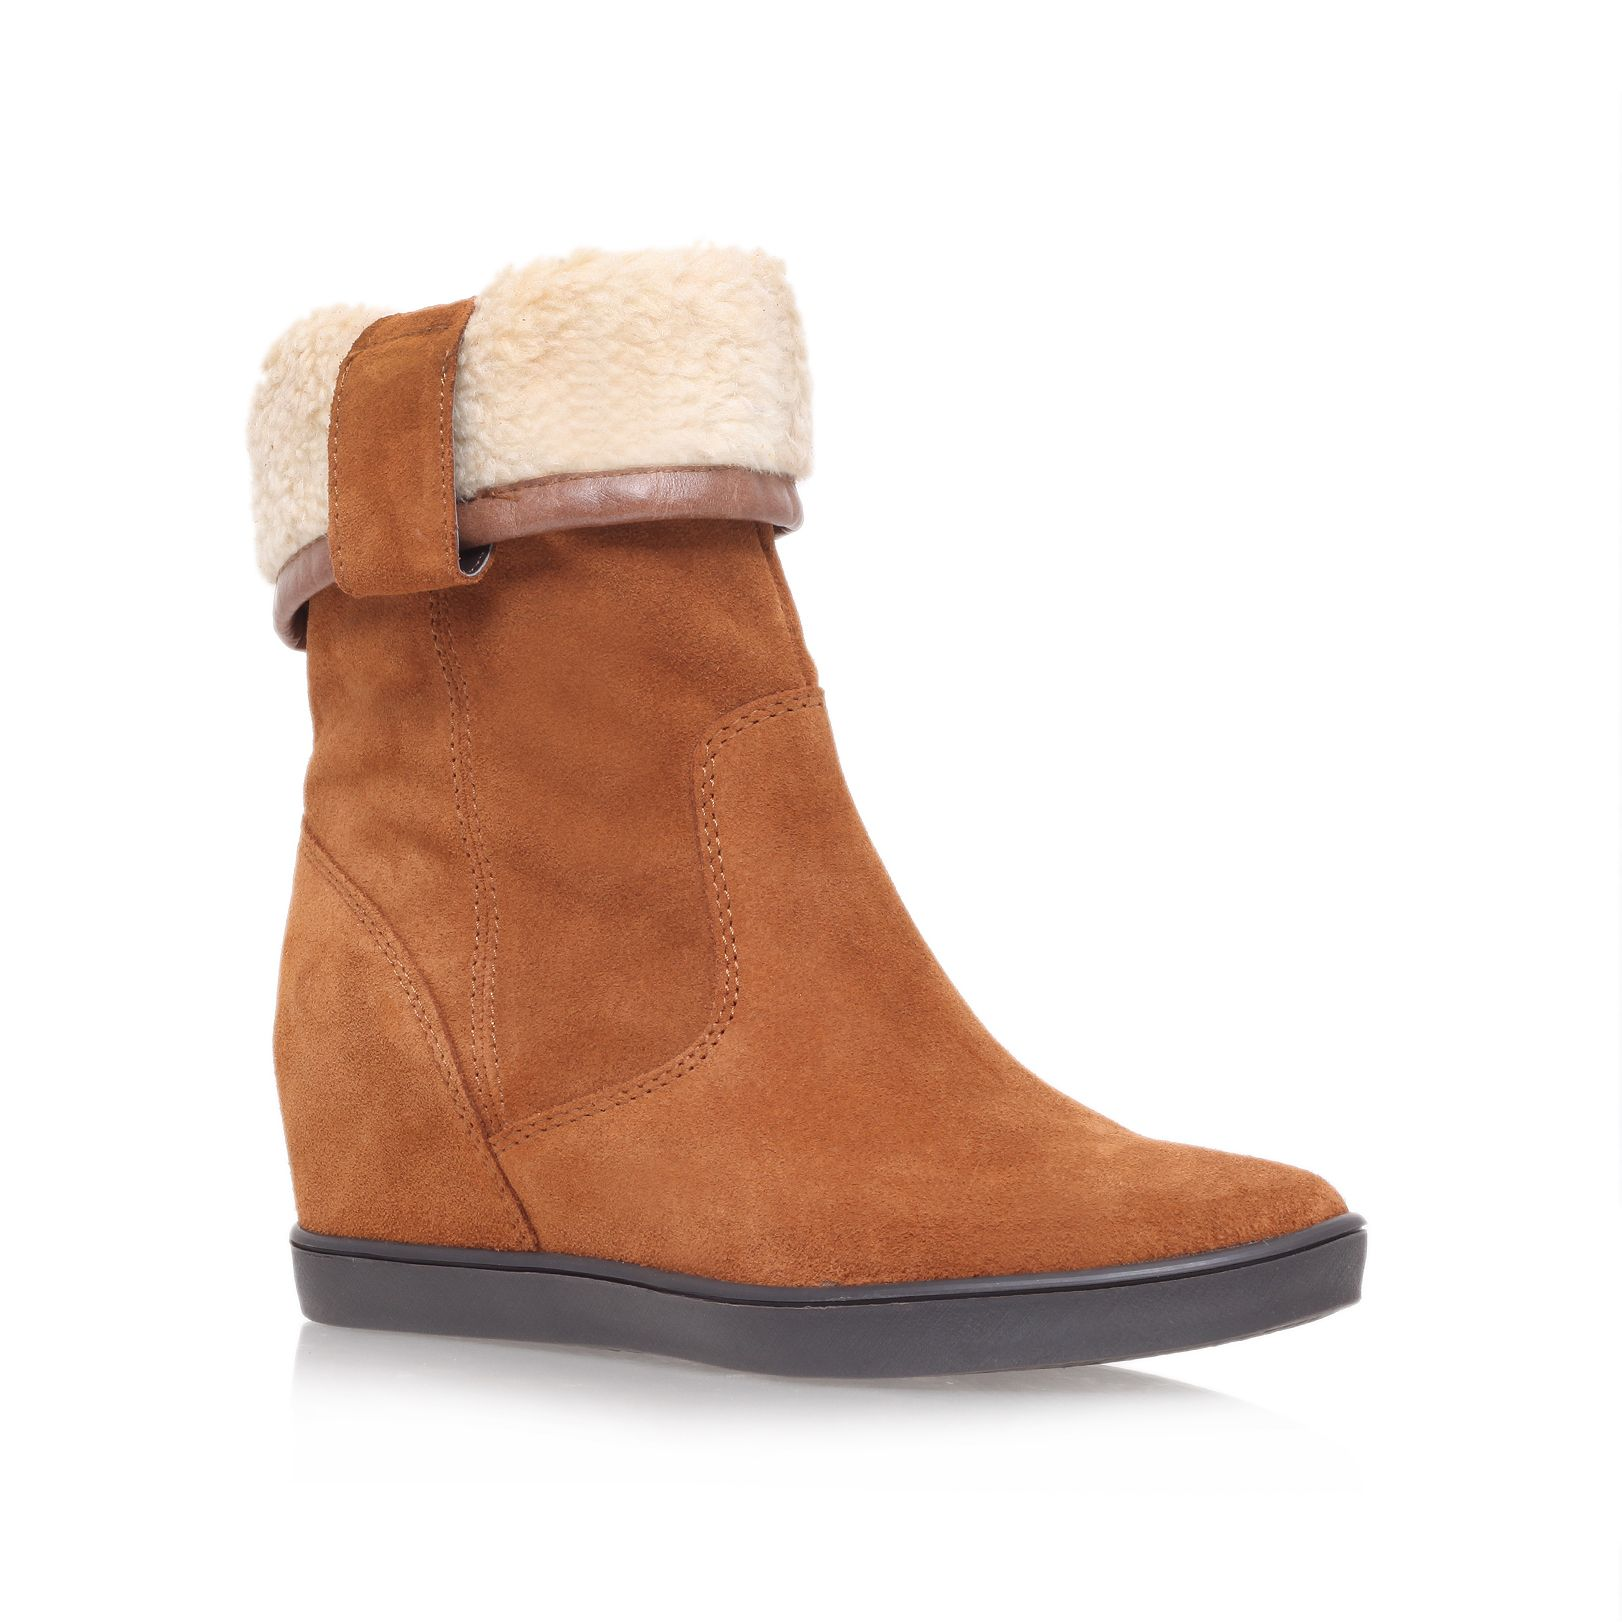 Shore low heel wedge ankle boots